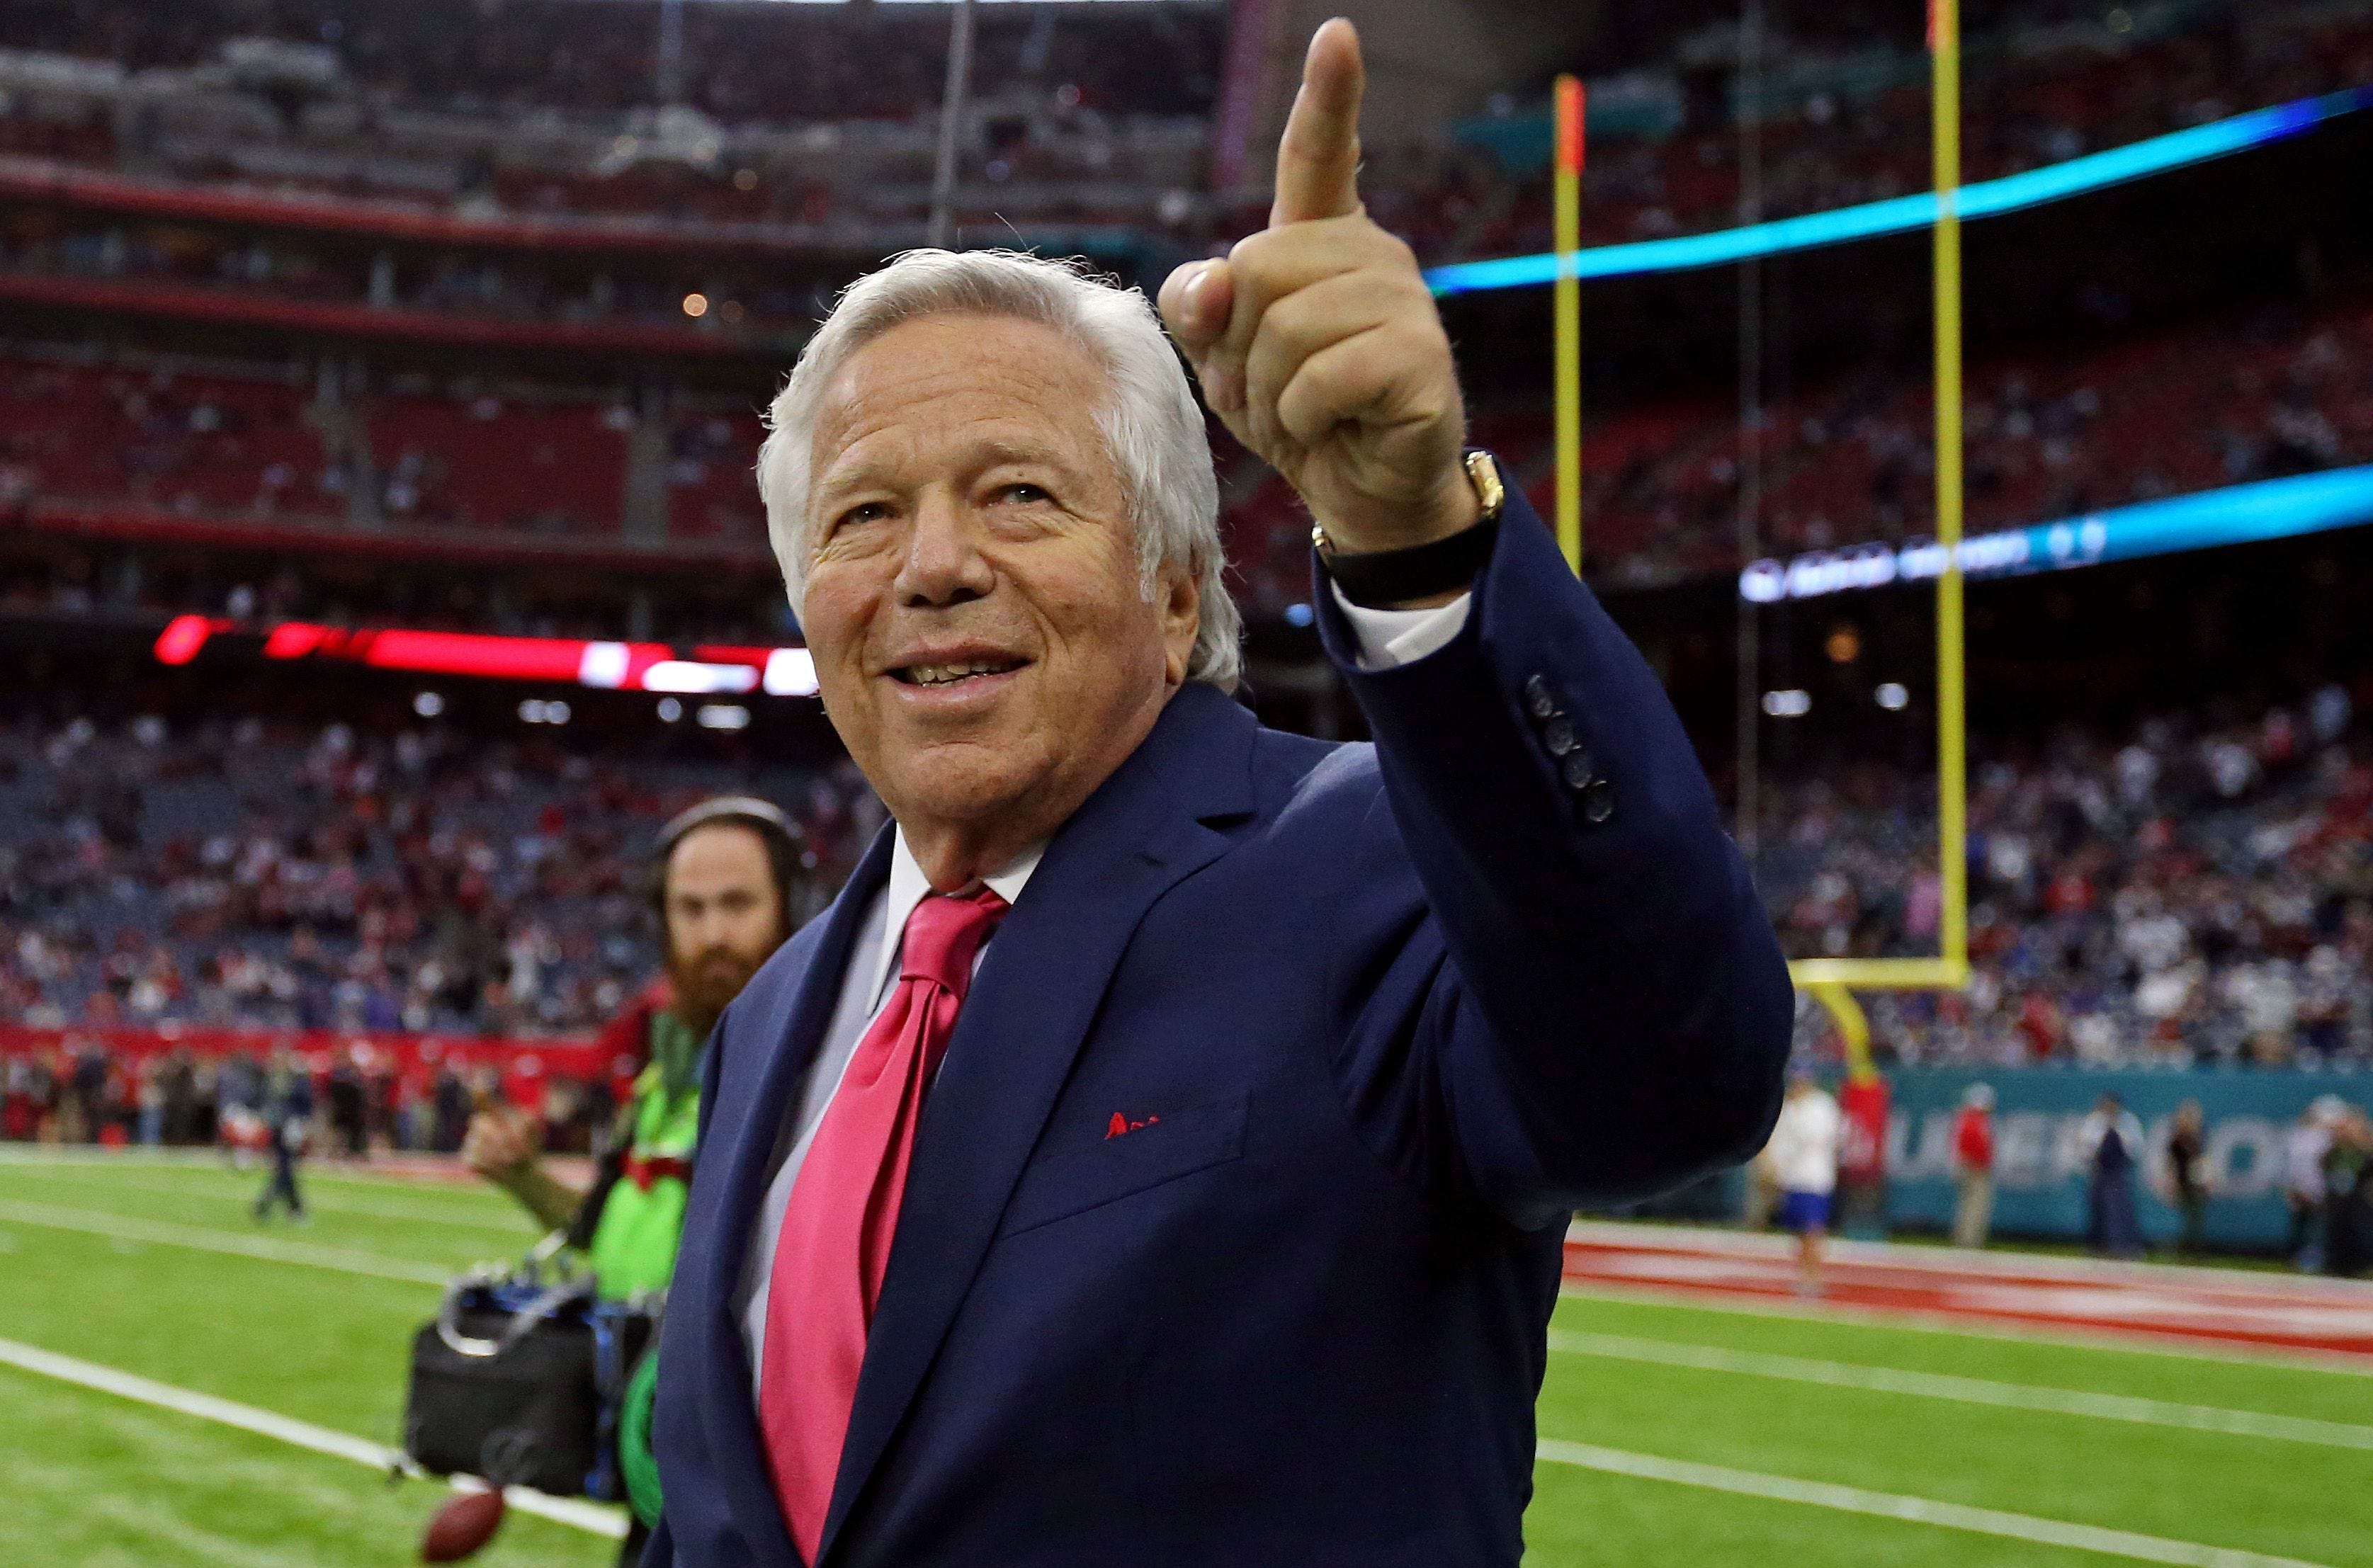 New England owner Robert Kraft faces misdemeanor solicitation charges in Palm Beach County after police say he twice paid for sex acts at Orchids of Asia Day Spa in January.